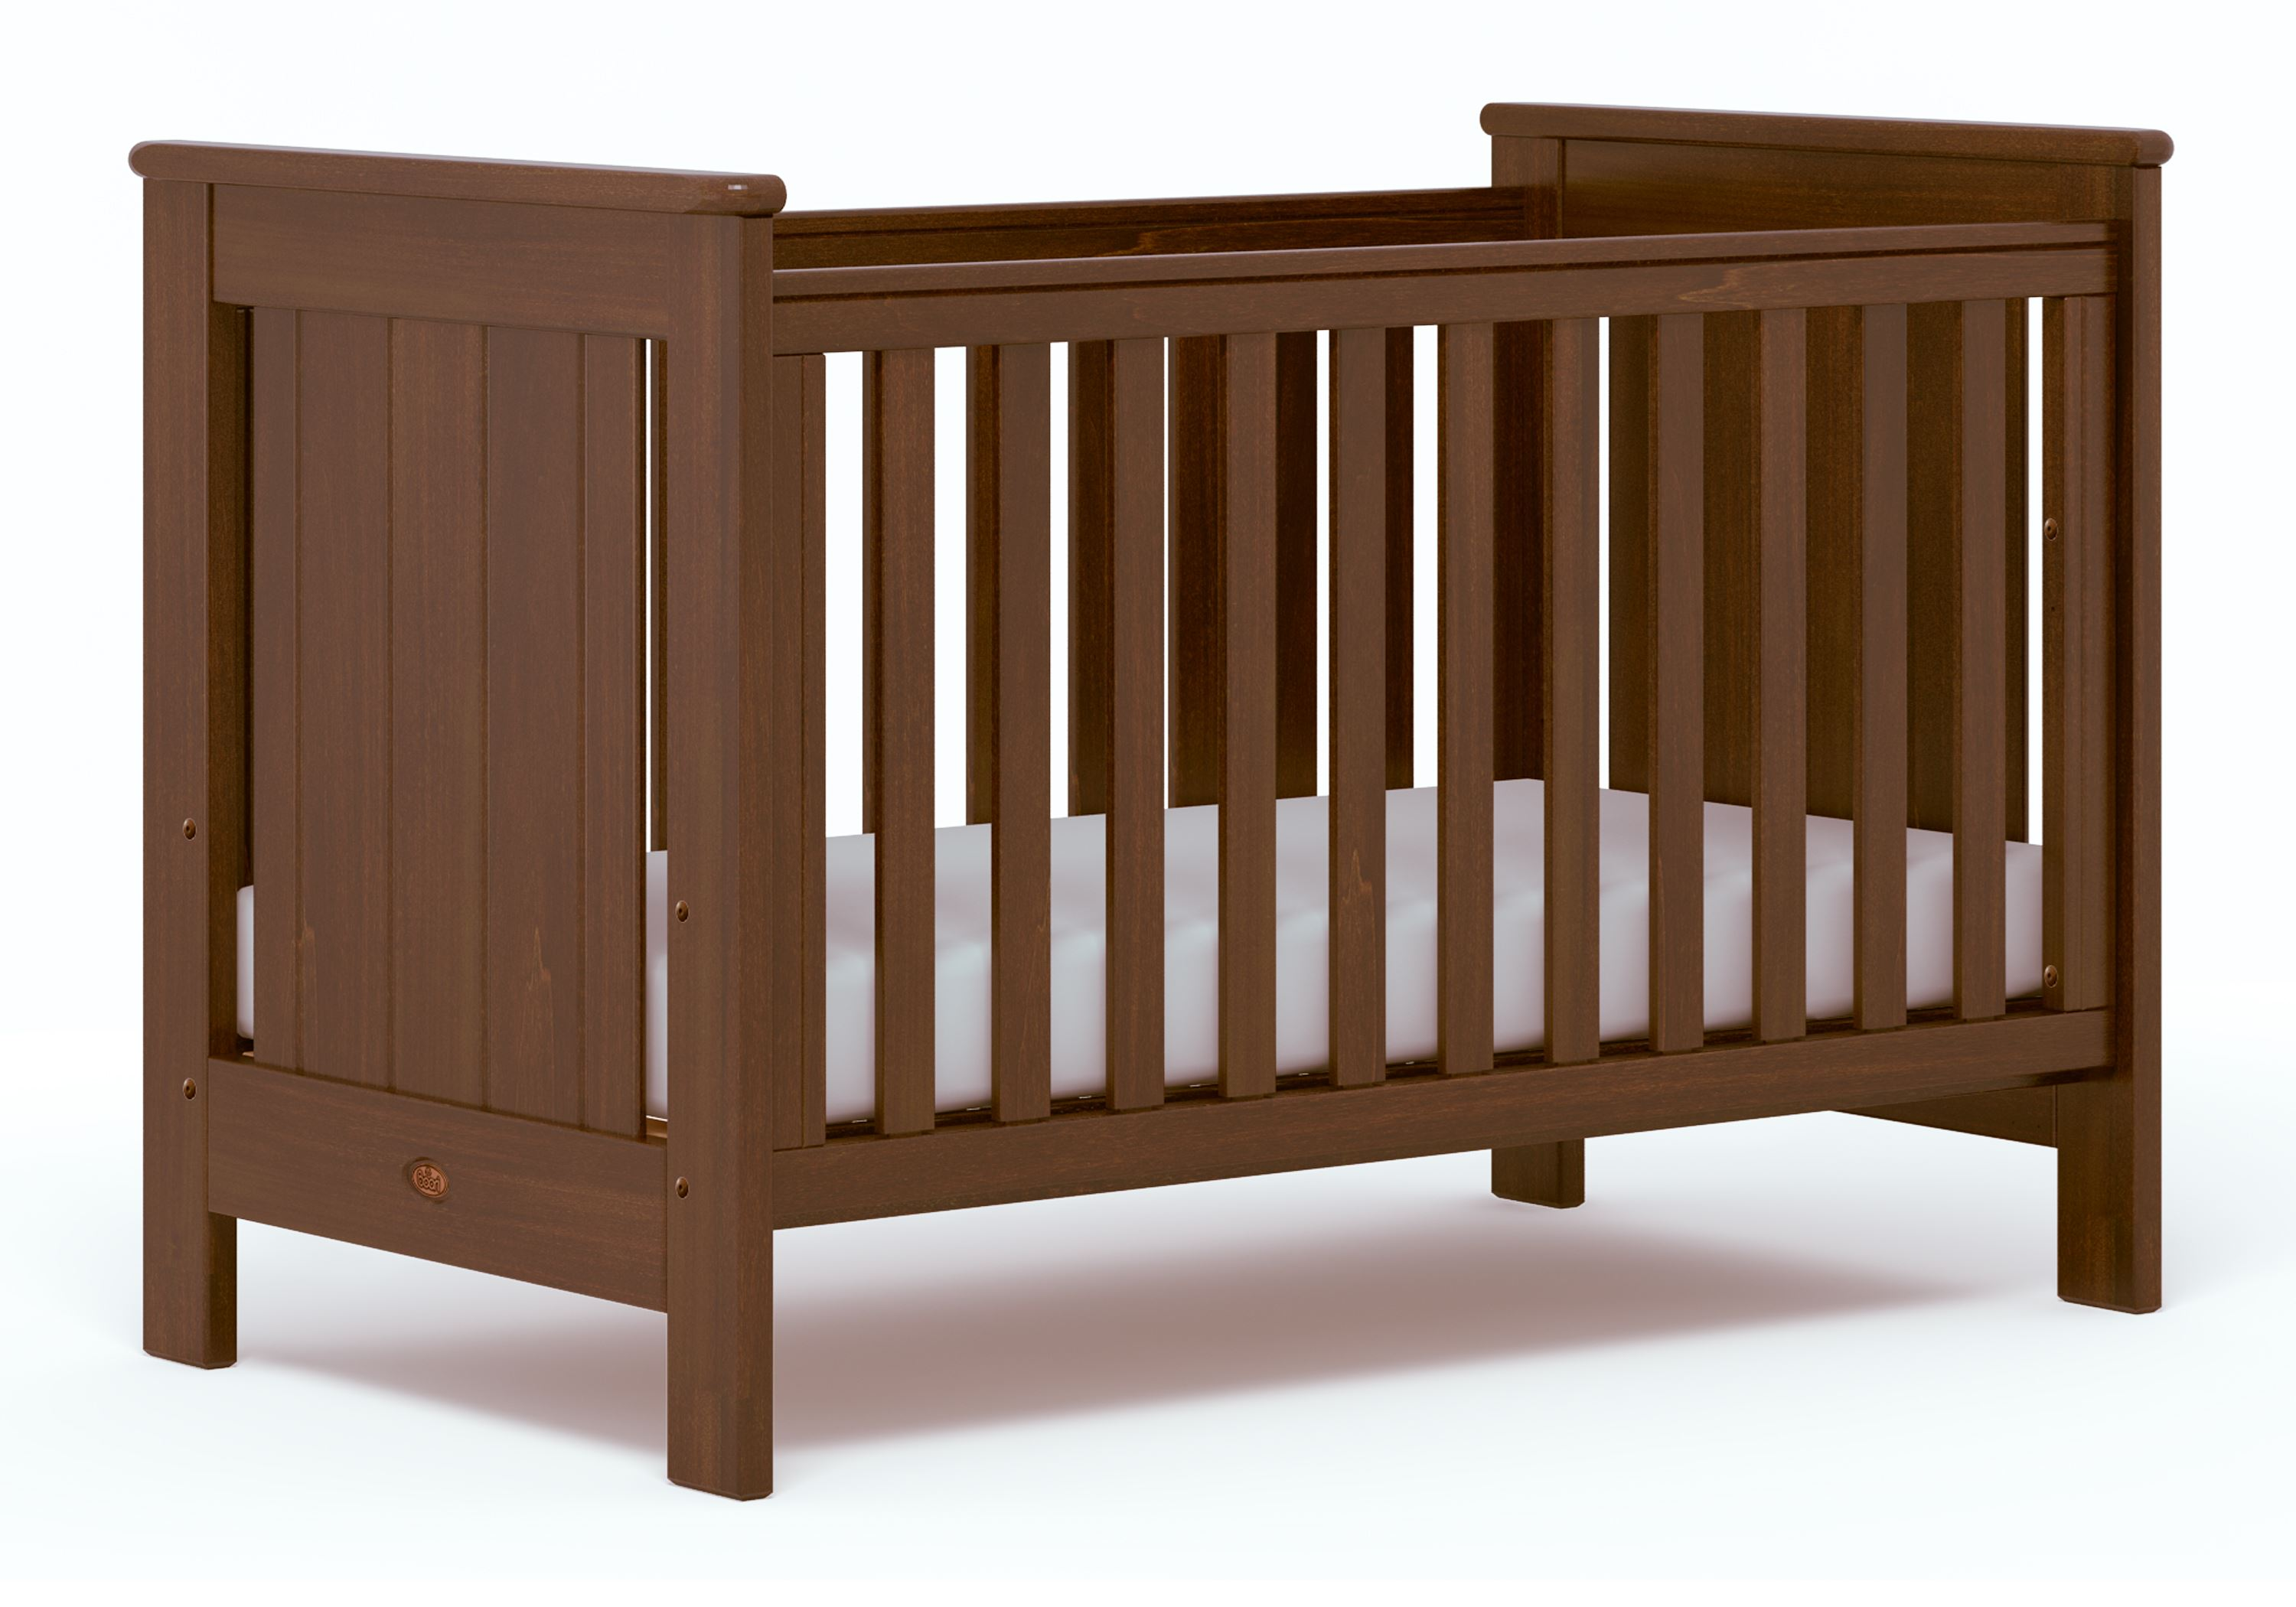 Plaza Cot bed (Dropside) - English Oak